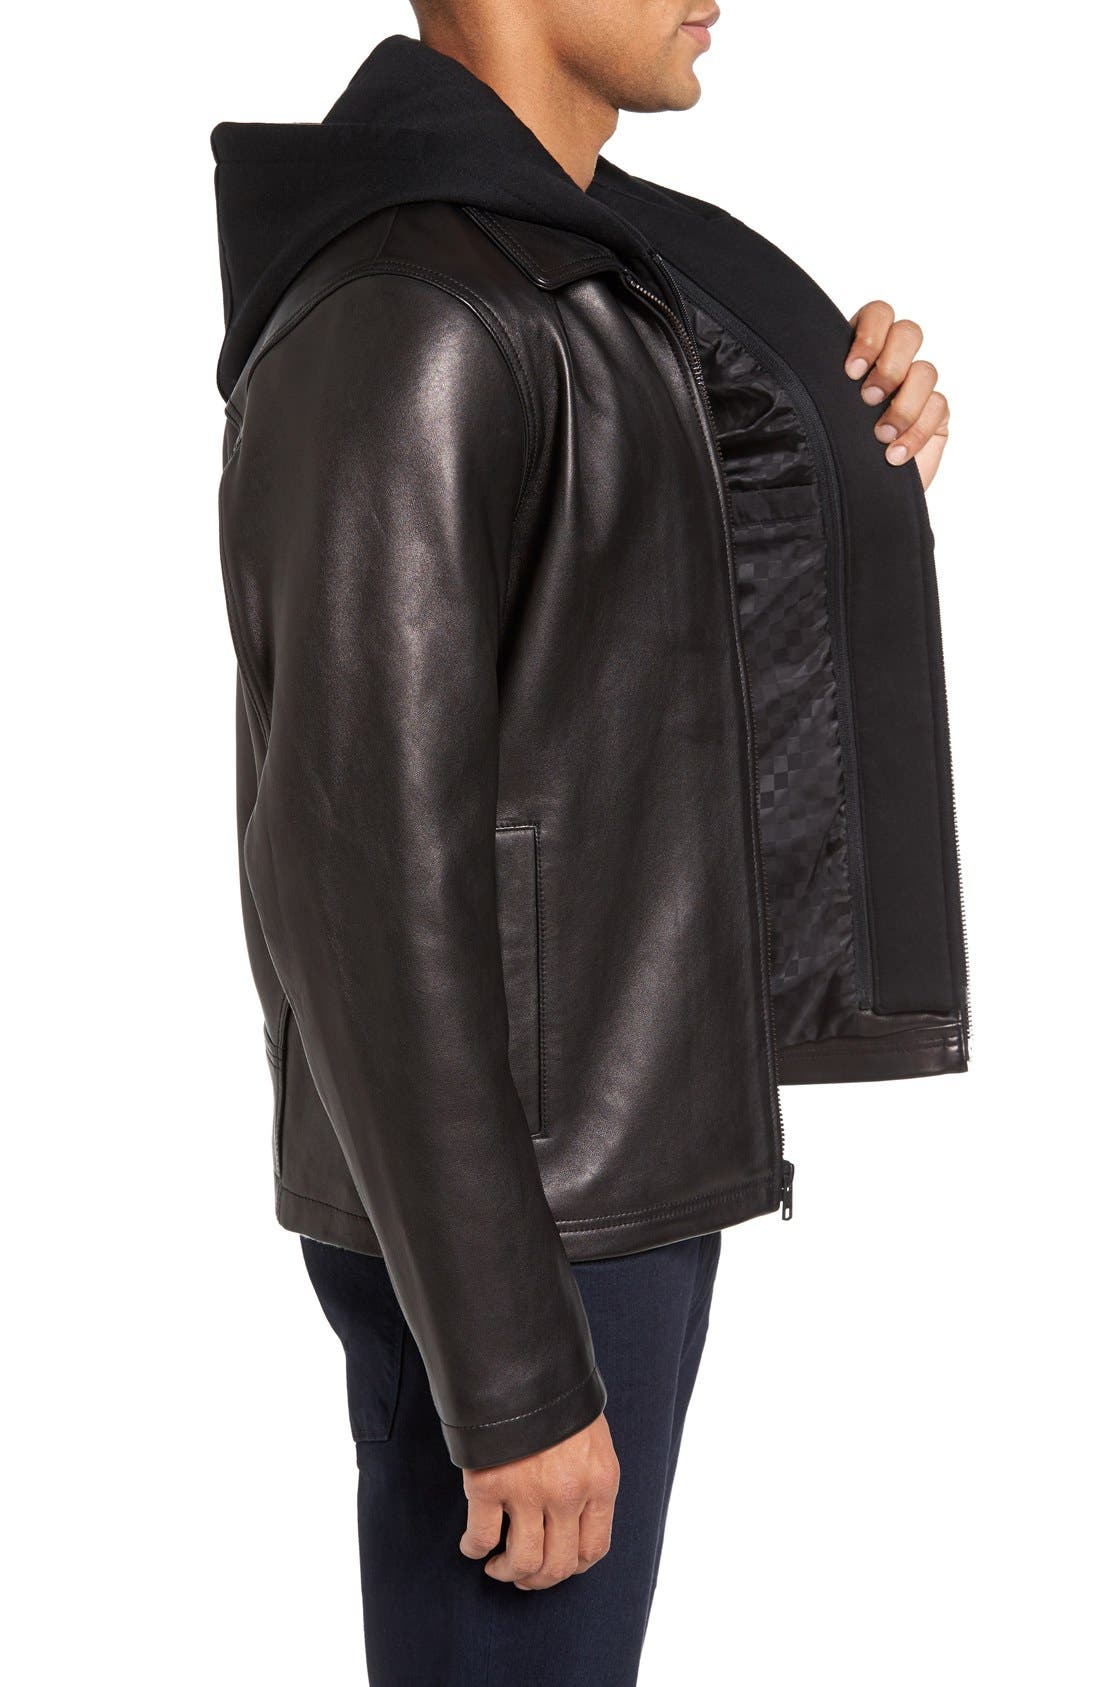 Leather Jacket with Removable Hooded Bib,                             Alternate thumbnail 5, color,                             001